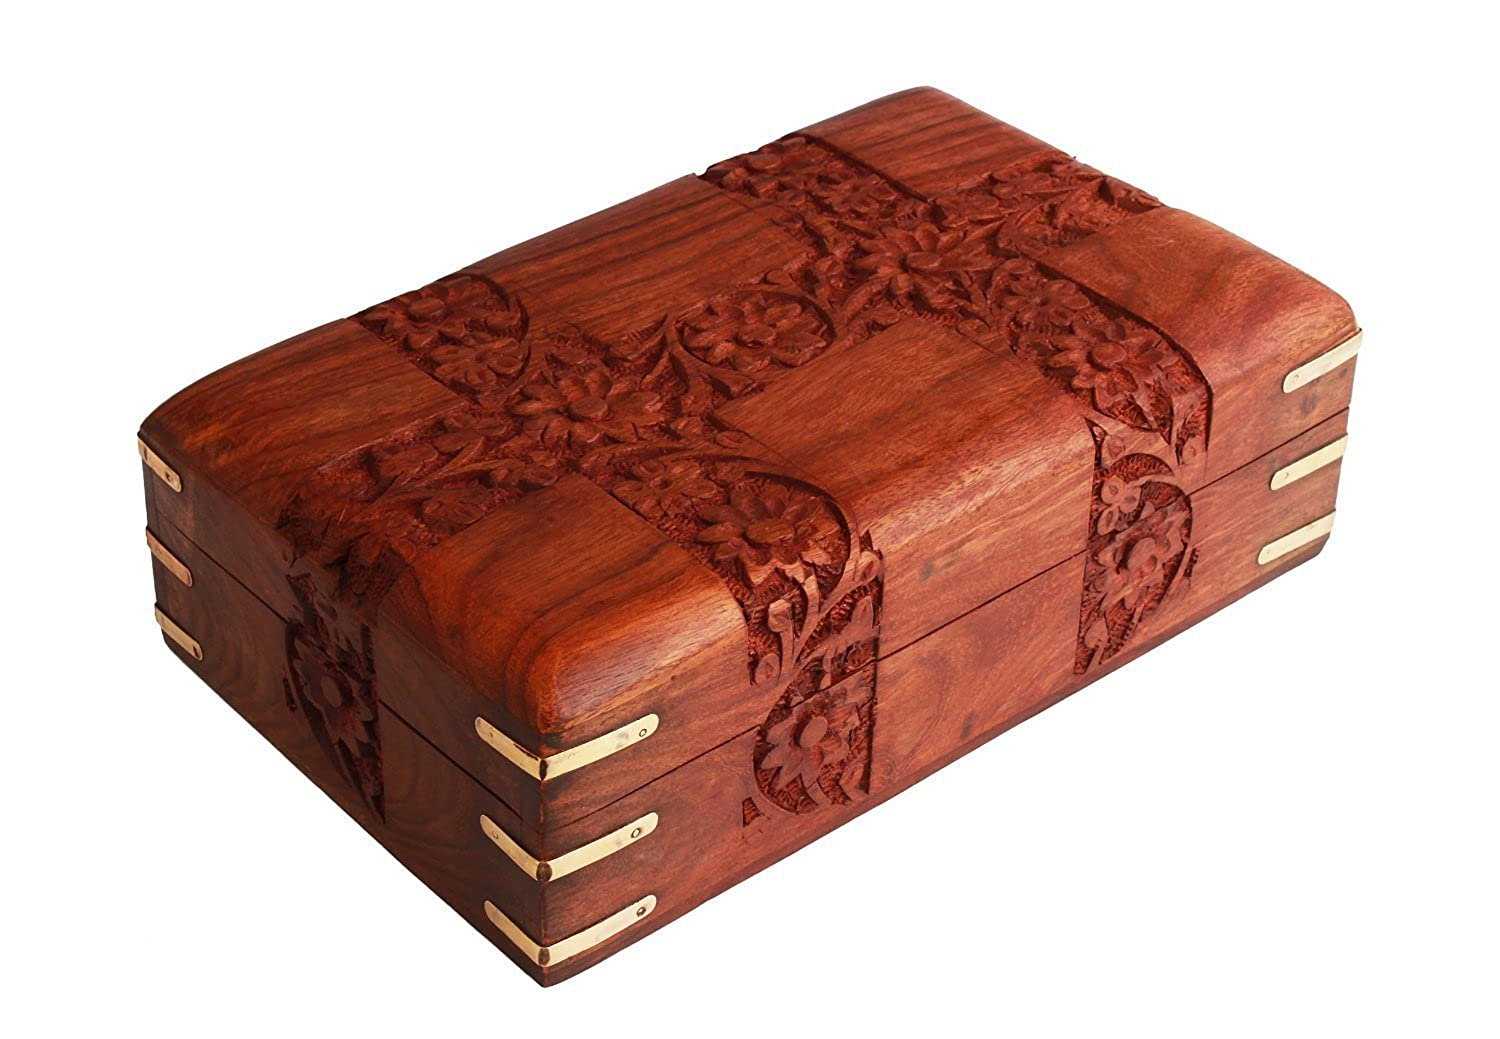 Antique Looking Hand Carved Wooden Jewelry Box with Intricately Carved Floral Patterns Birthday Gifts for Women Girls Store Indya